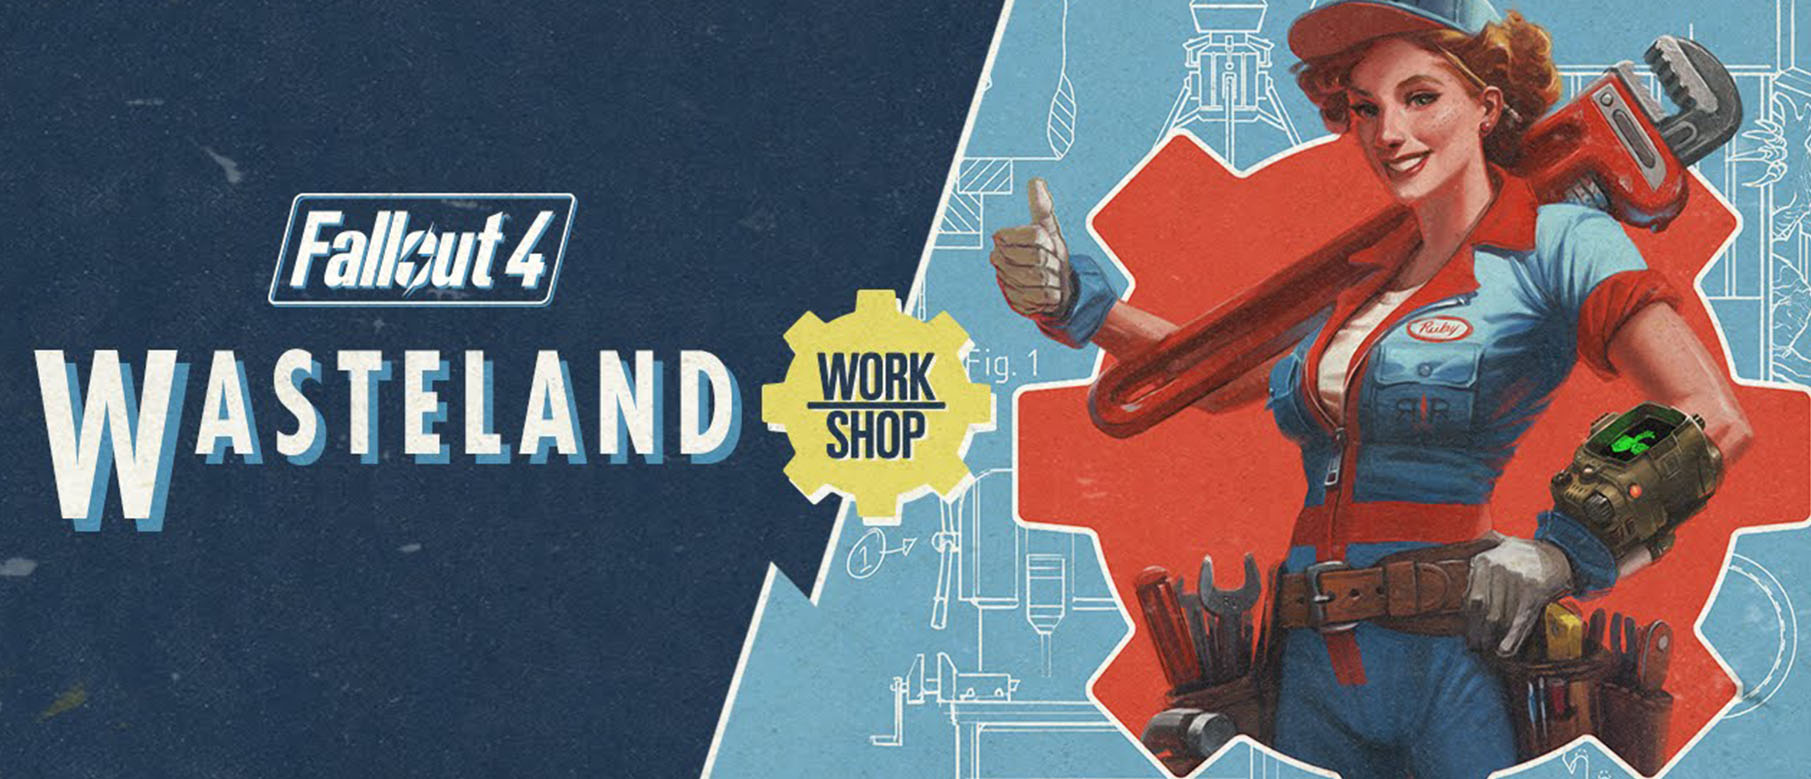 Изображение к Список достижений Fallout 4: Wasteland Workshop